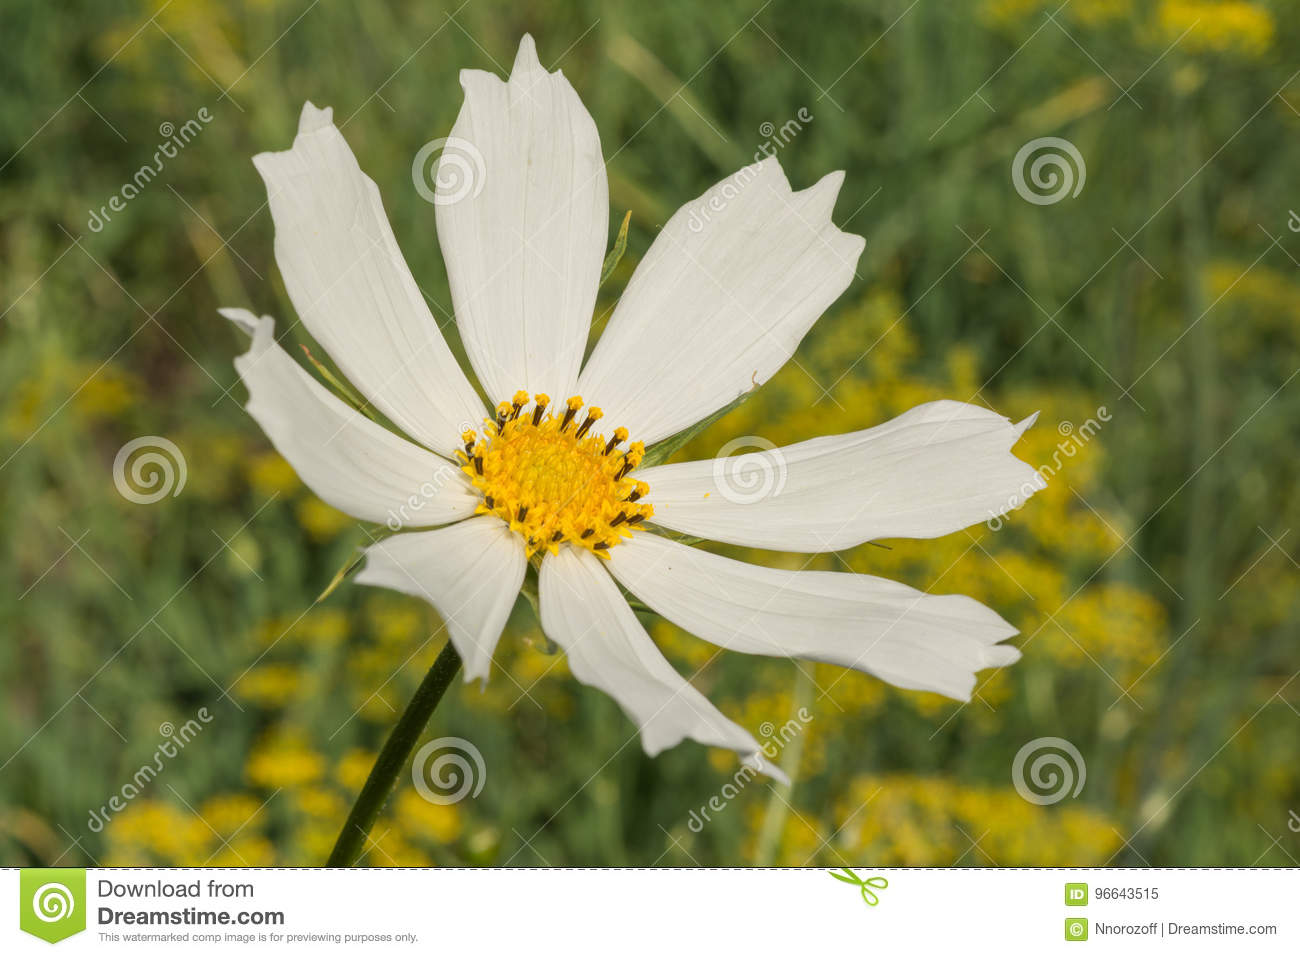 White flower daisy with a stem on a green background stock image download white flower daisy with a stem on a green background stock image image of mightylinksfo